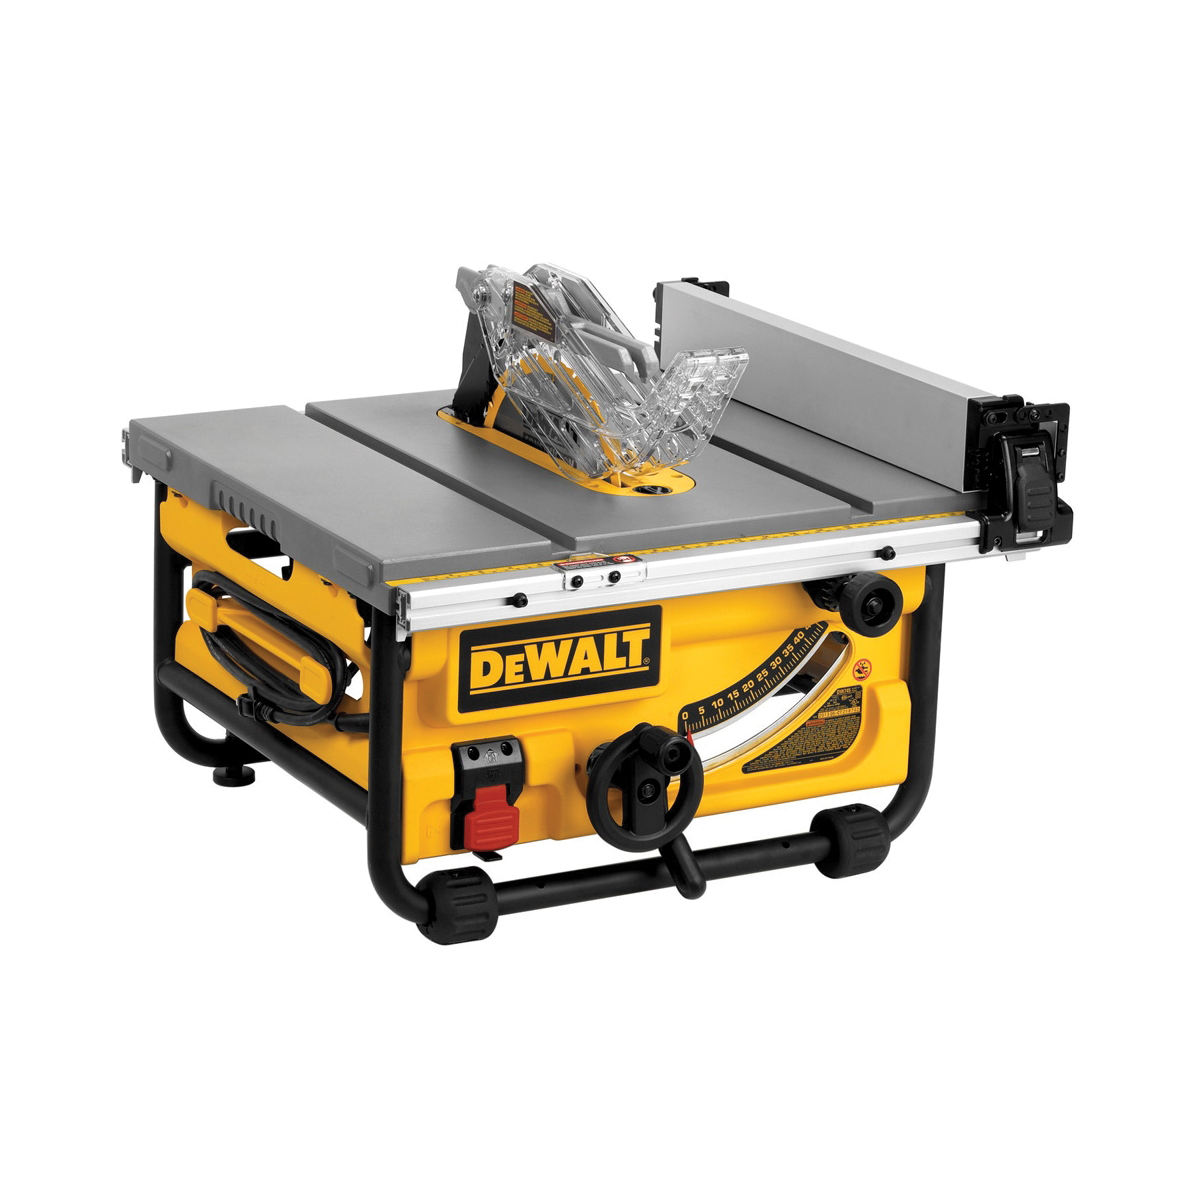 DeWALT® DWE7480 Compact Jobsite Table Saw With Site-Pro Modular Guarding System, 10 in Dia Blade, 5/8 in Arbor/Shank, 3-1/8 in 90 deg Capacity, 2 hp, Tool Only